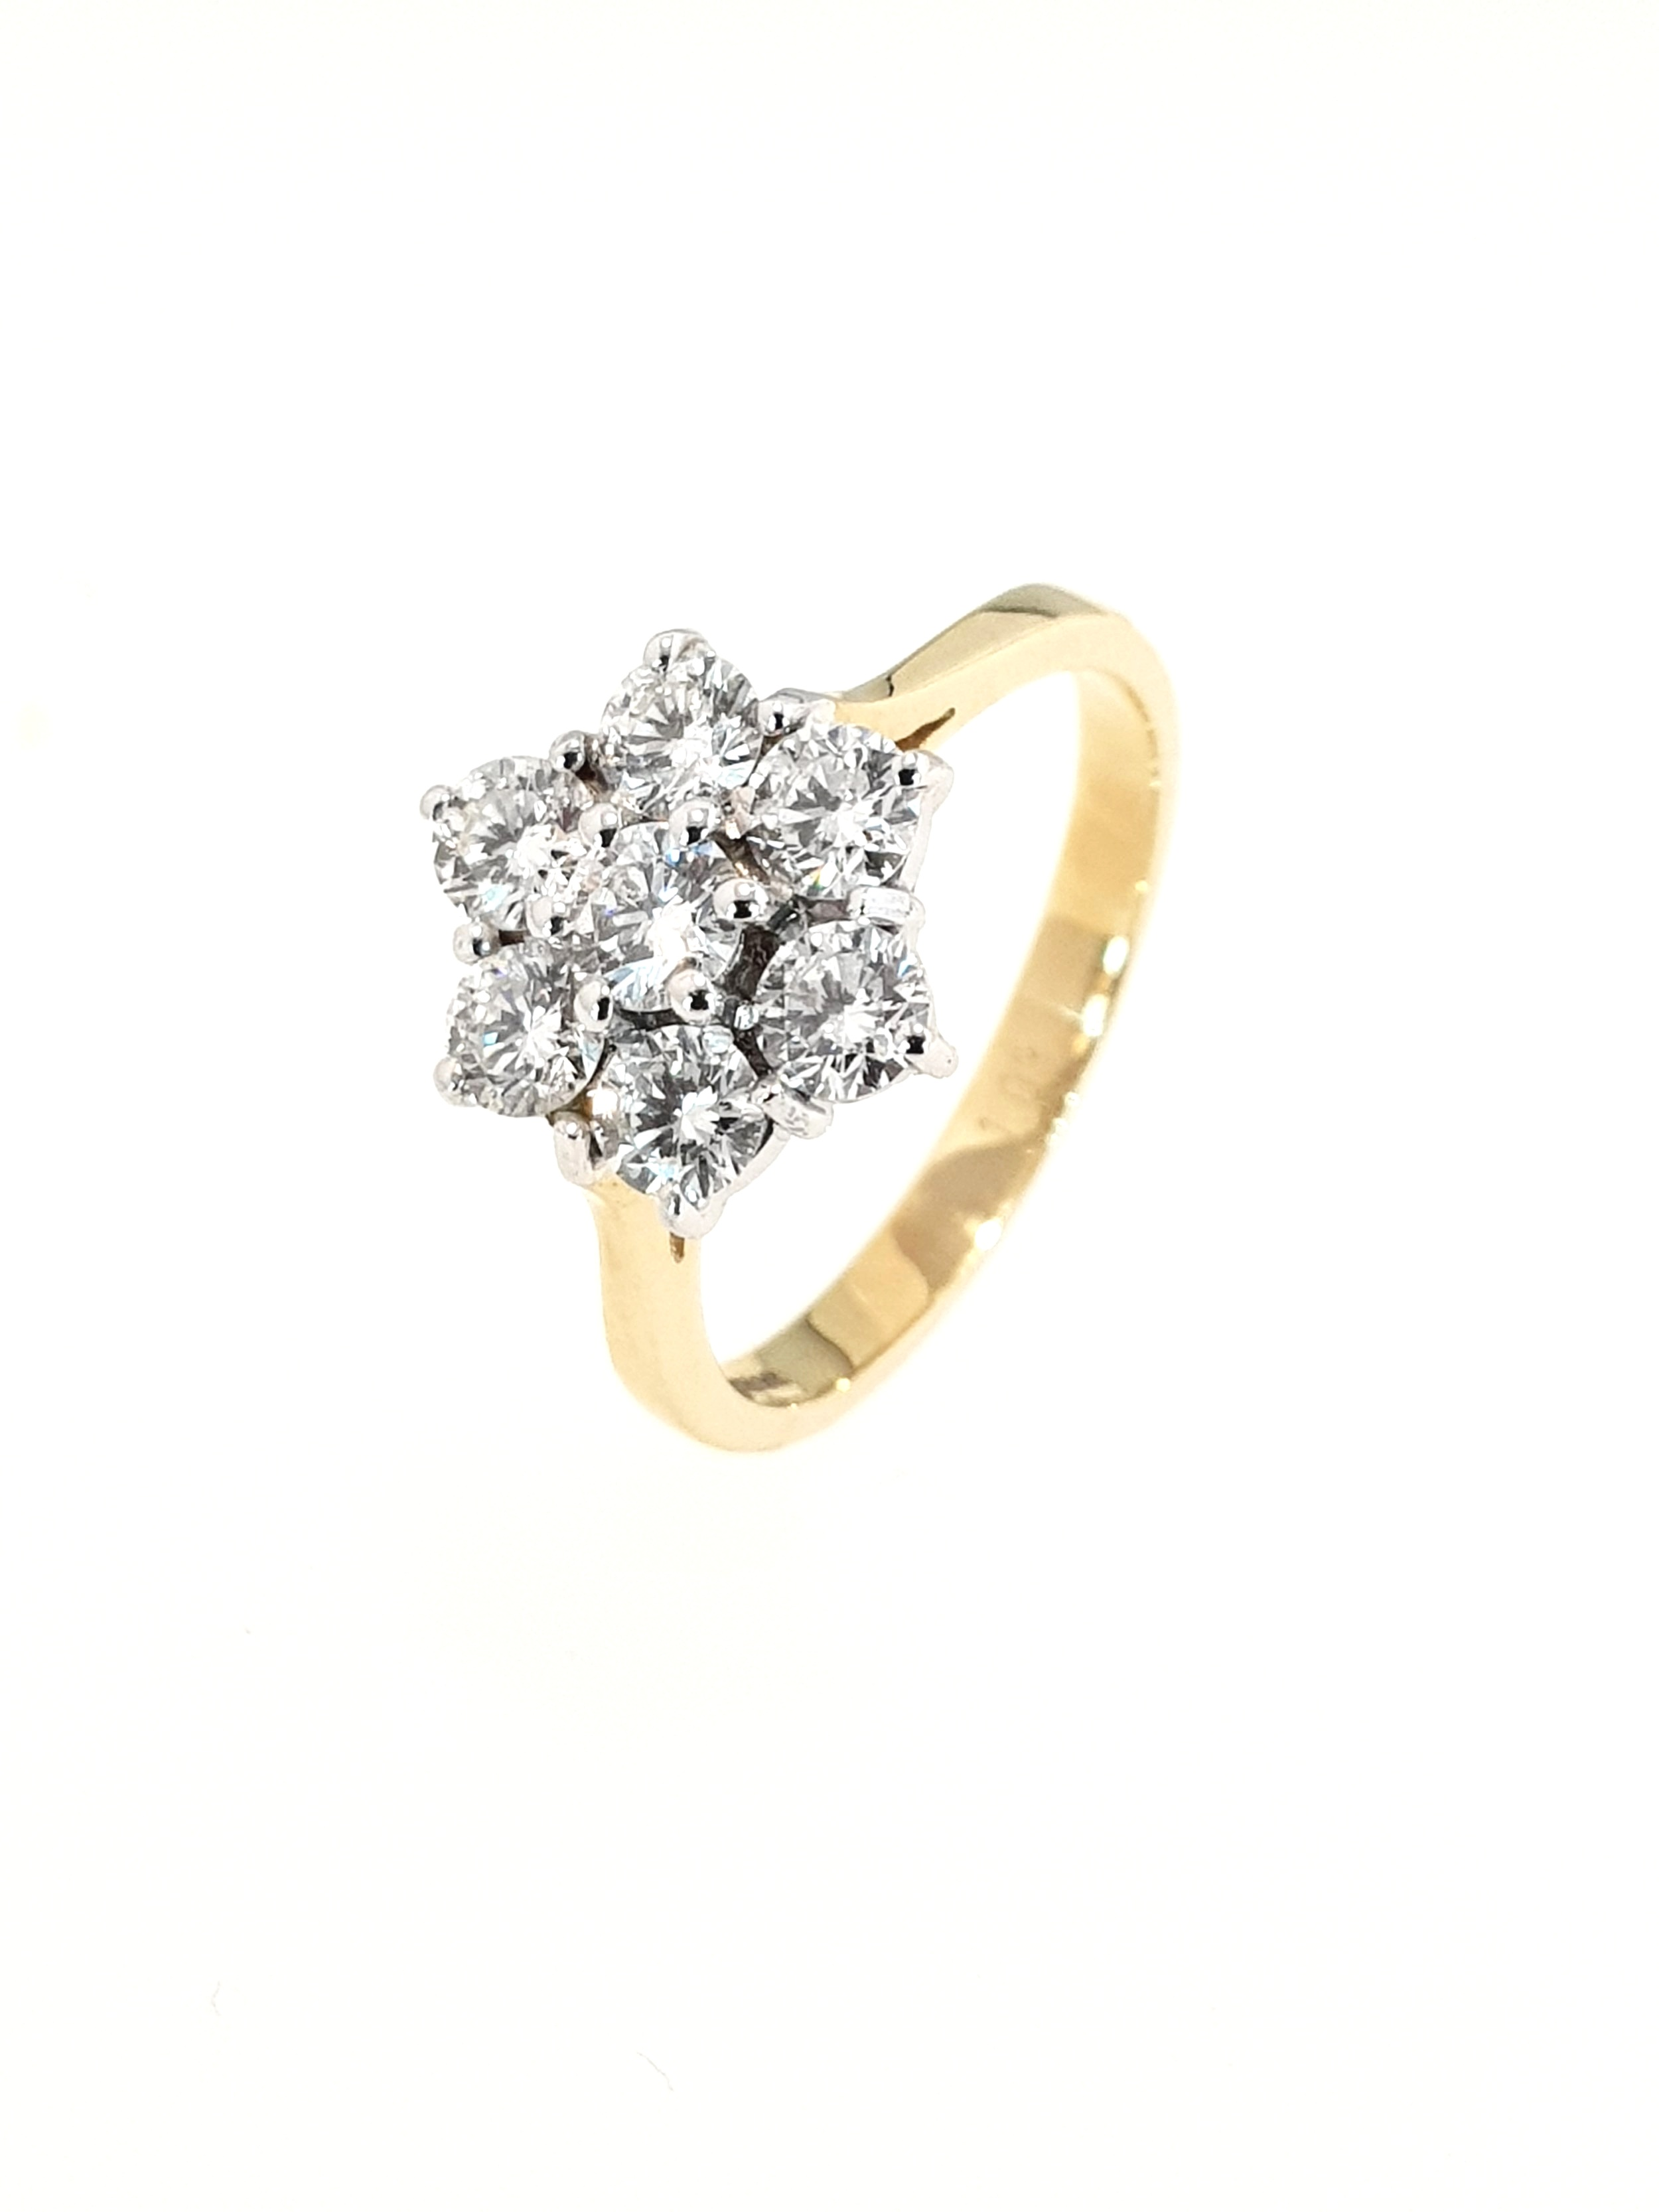 18ct Yellow Gold 7 Stone Diamond Cluster Ring  TCW: 1.03ct, G, Si1  Stock Code: N8953  £3100